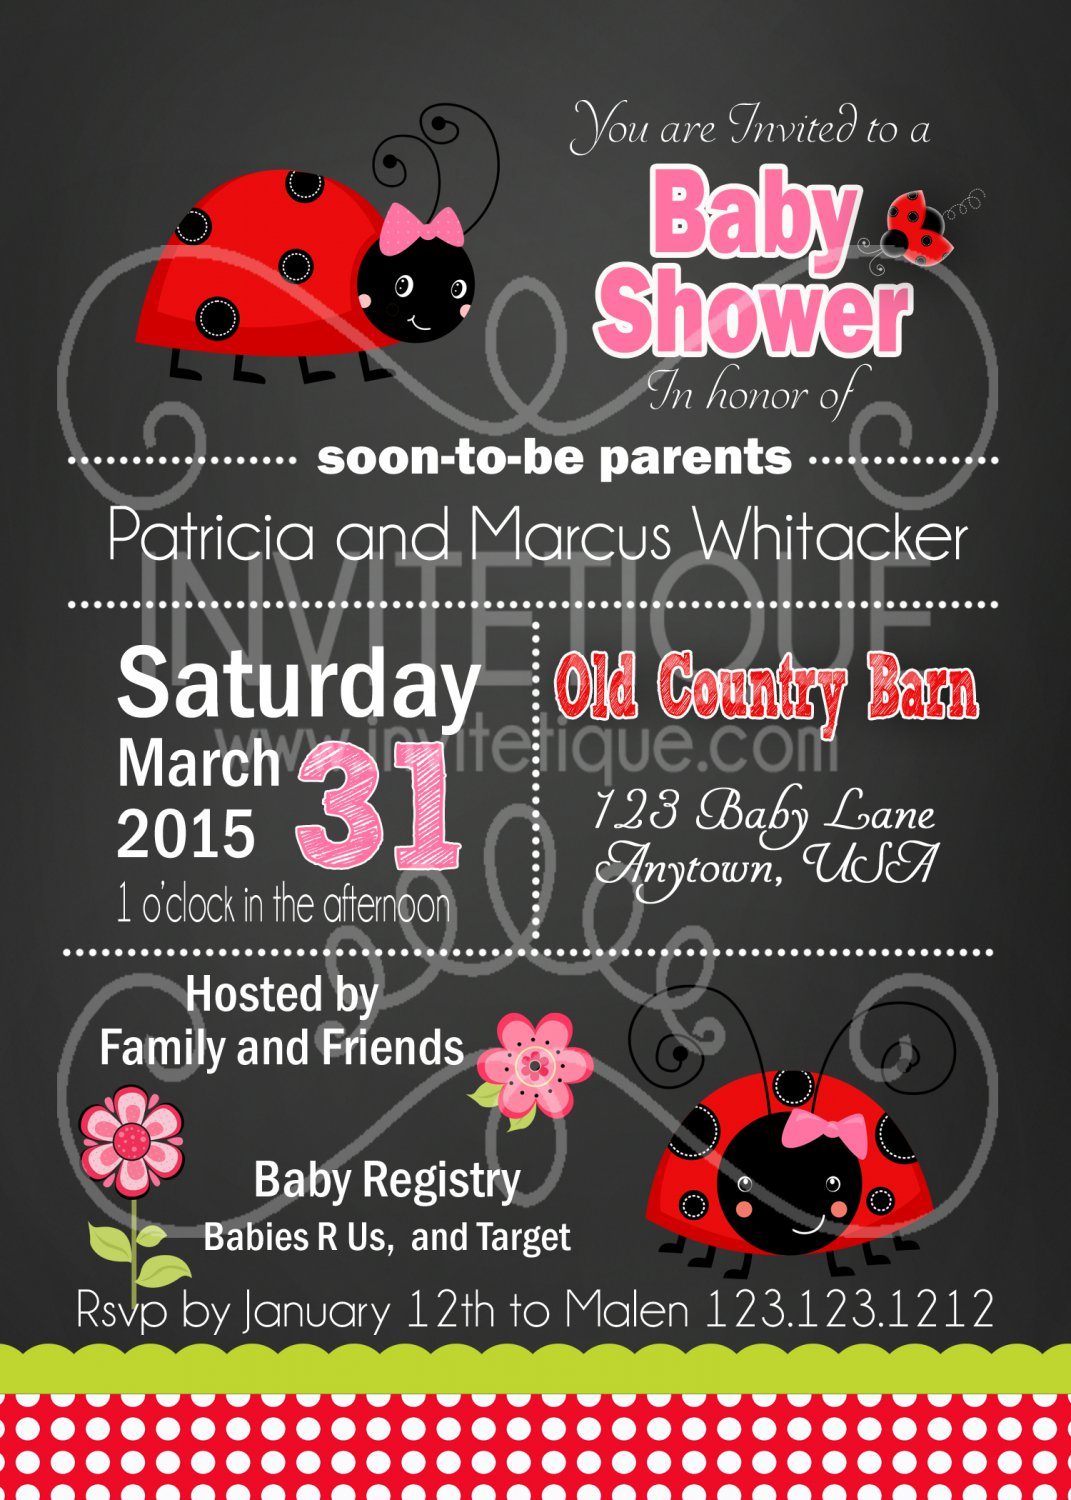 Ladybug Baby Shower Invitation | 1st Birthday Party Invitation | Birthday Invitations Printable